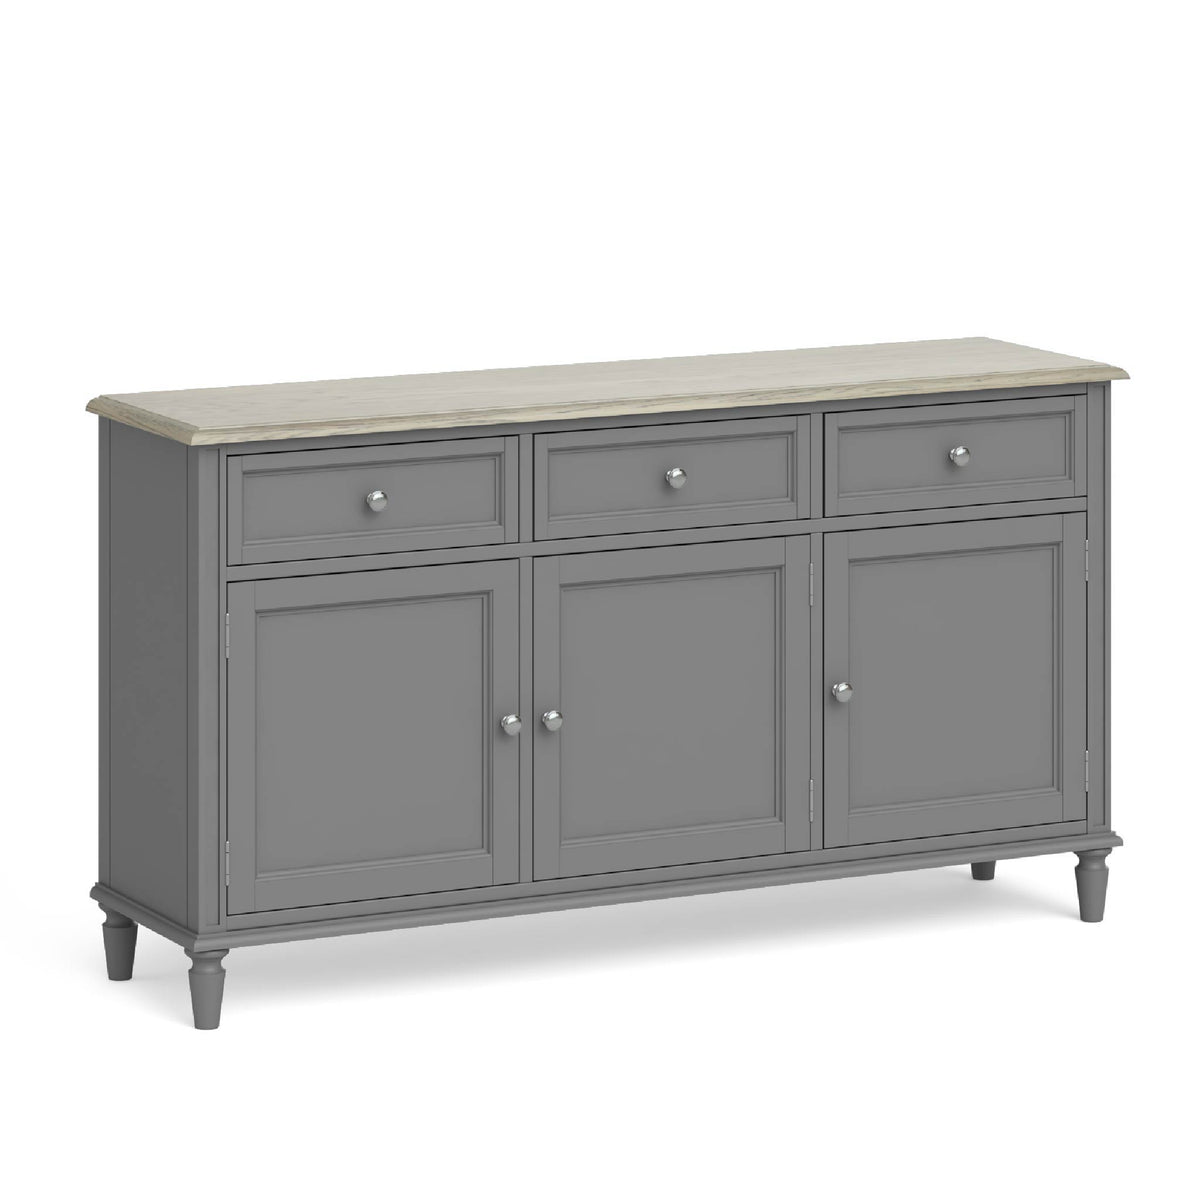 Mulsanne Grey Large Sideboard